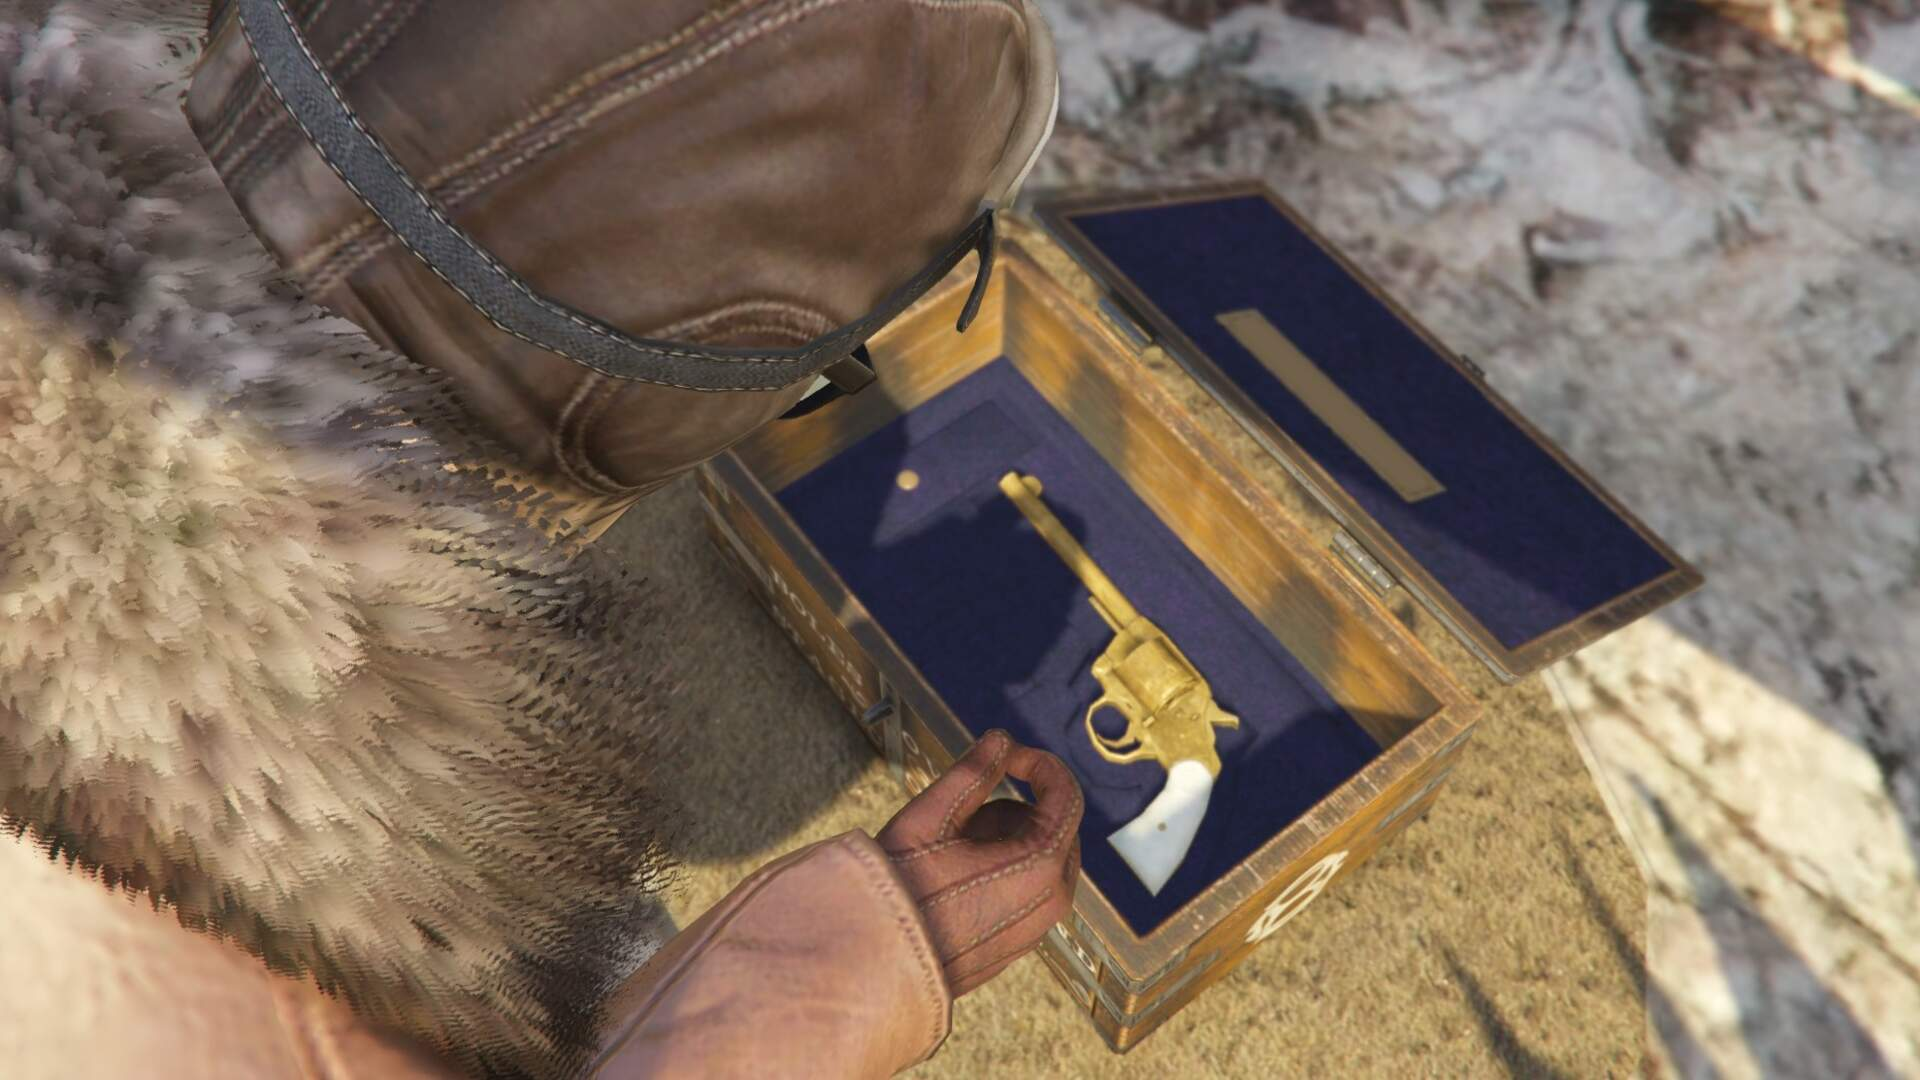 GTA Online: How to Complete the Treasure Hunt and Get the Gold Double Action Revolver